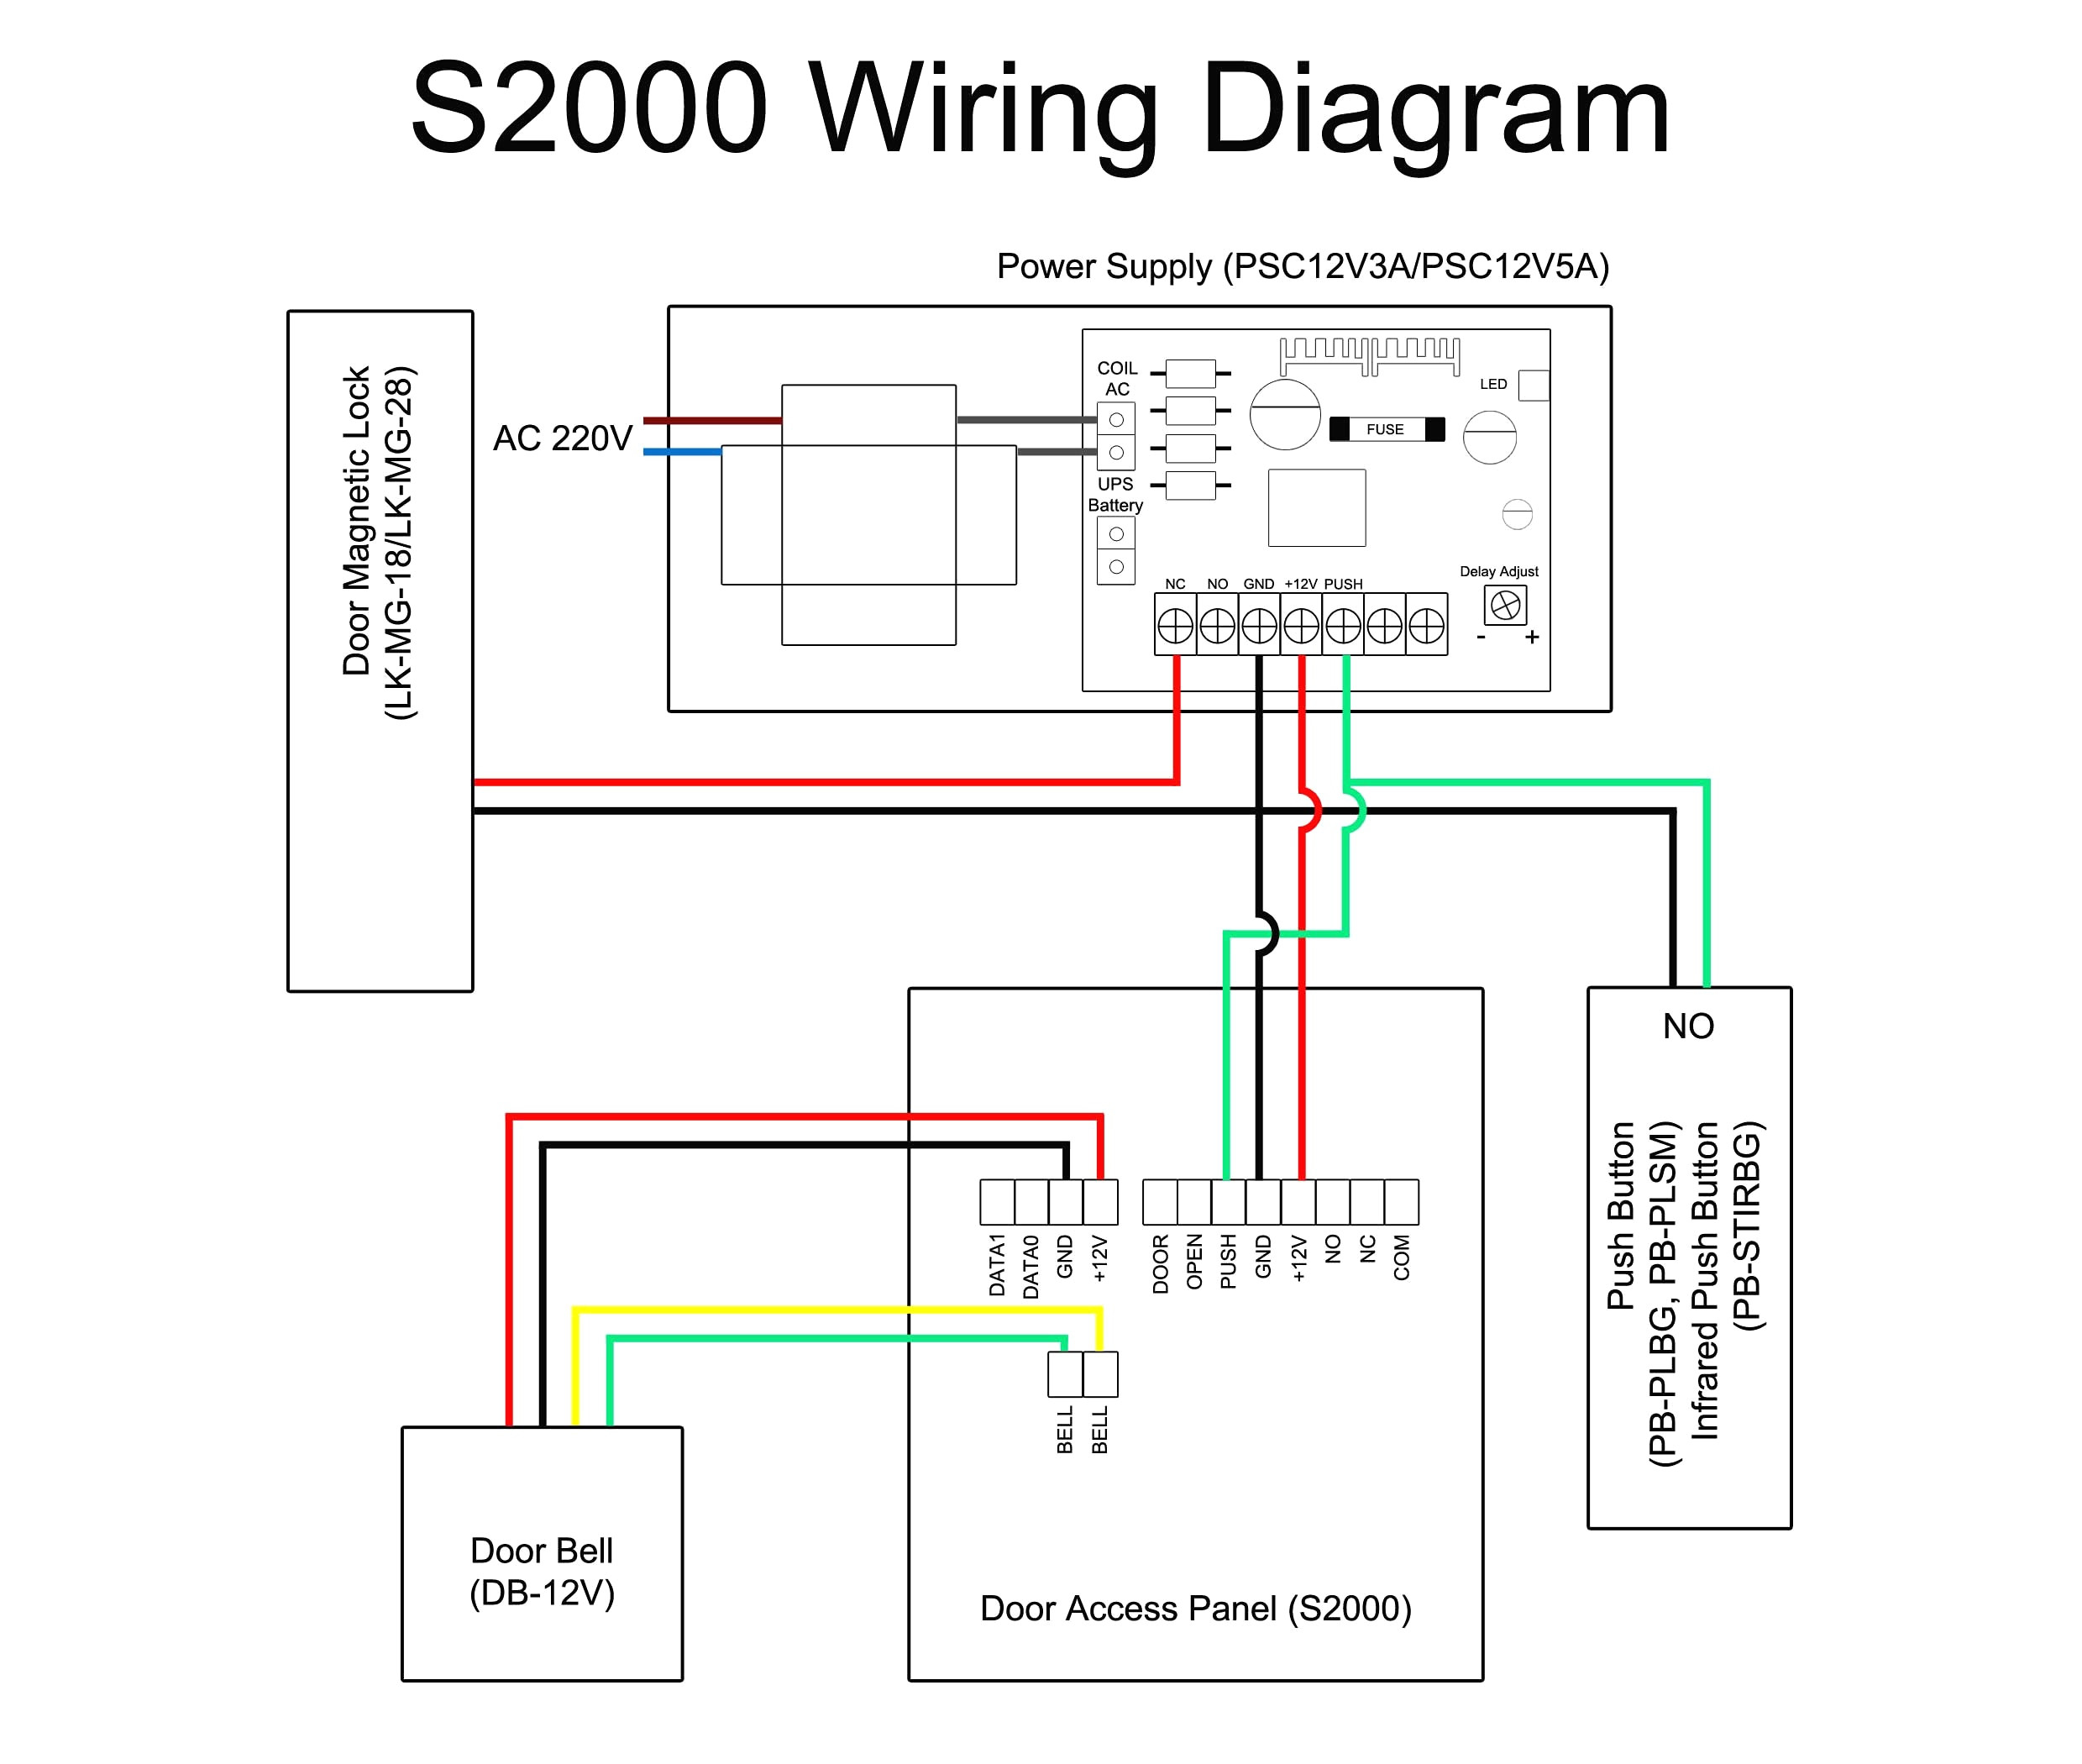 samsung security camera wiring diagram Collection-Wiring Diagram for Alarm Pir Refrence Samsung Security Camera Wiring Diagram Health Shop 2-p